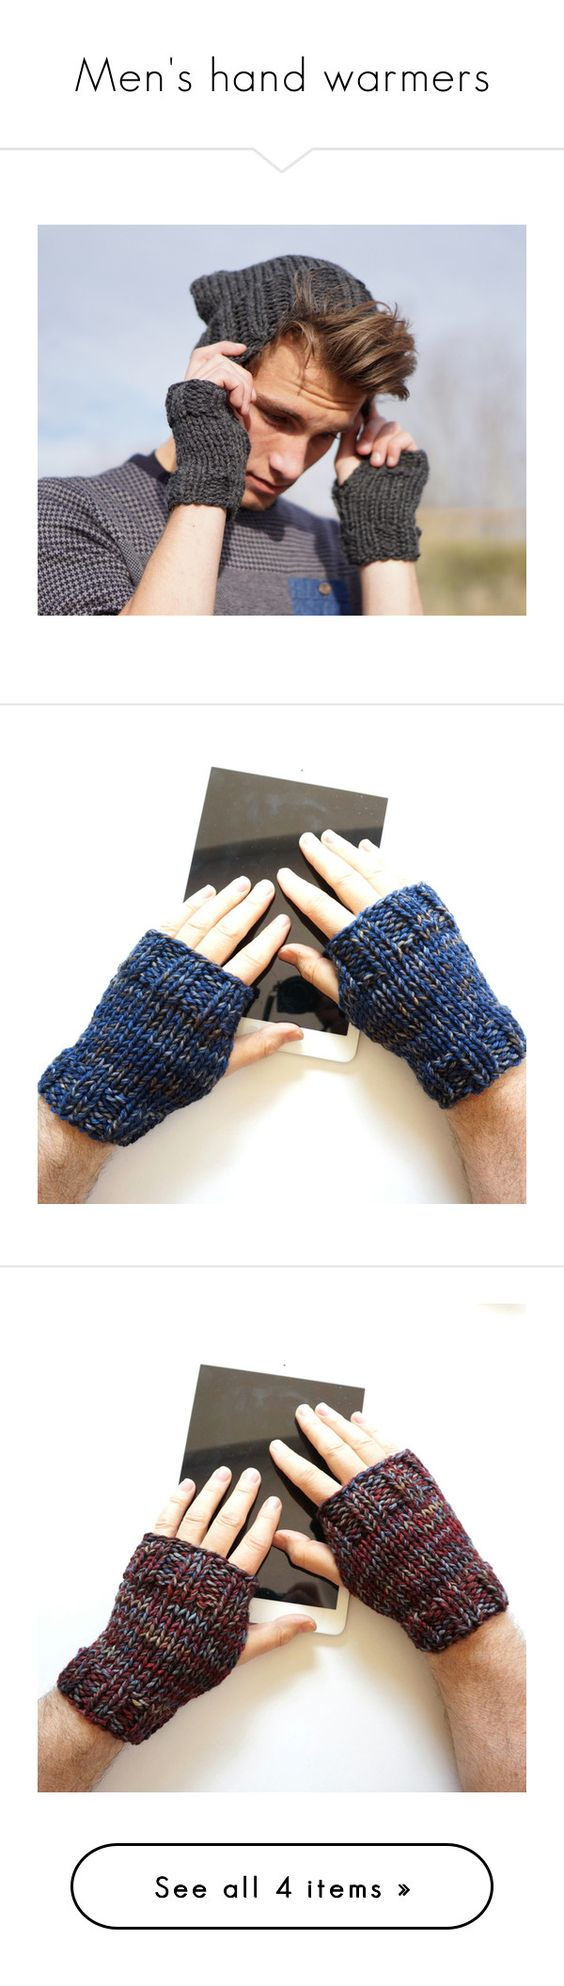 Fingerless leather gloves mens accessories -  Men S Hand Warmers By Valeriebaberdesigns Liked On Polyvore Featuring Men S Fashion Men S Accessories Men S Gloves Mens Gray Leather Gloves